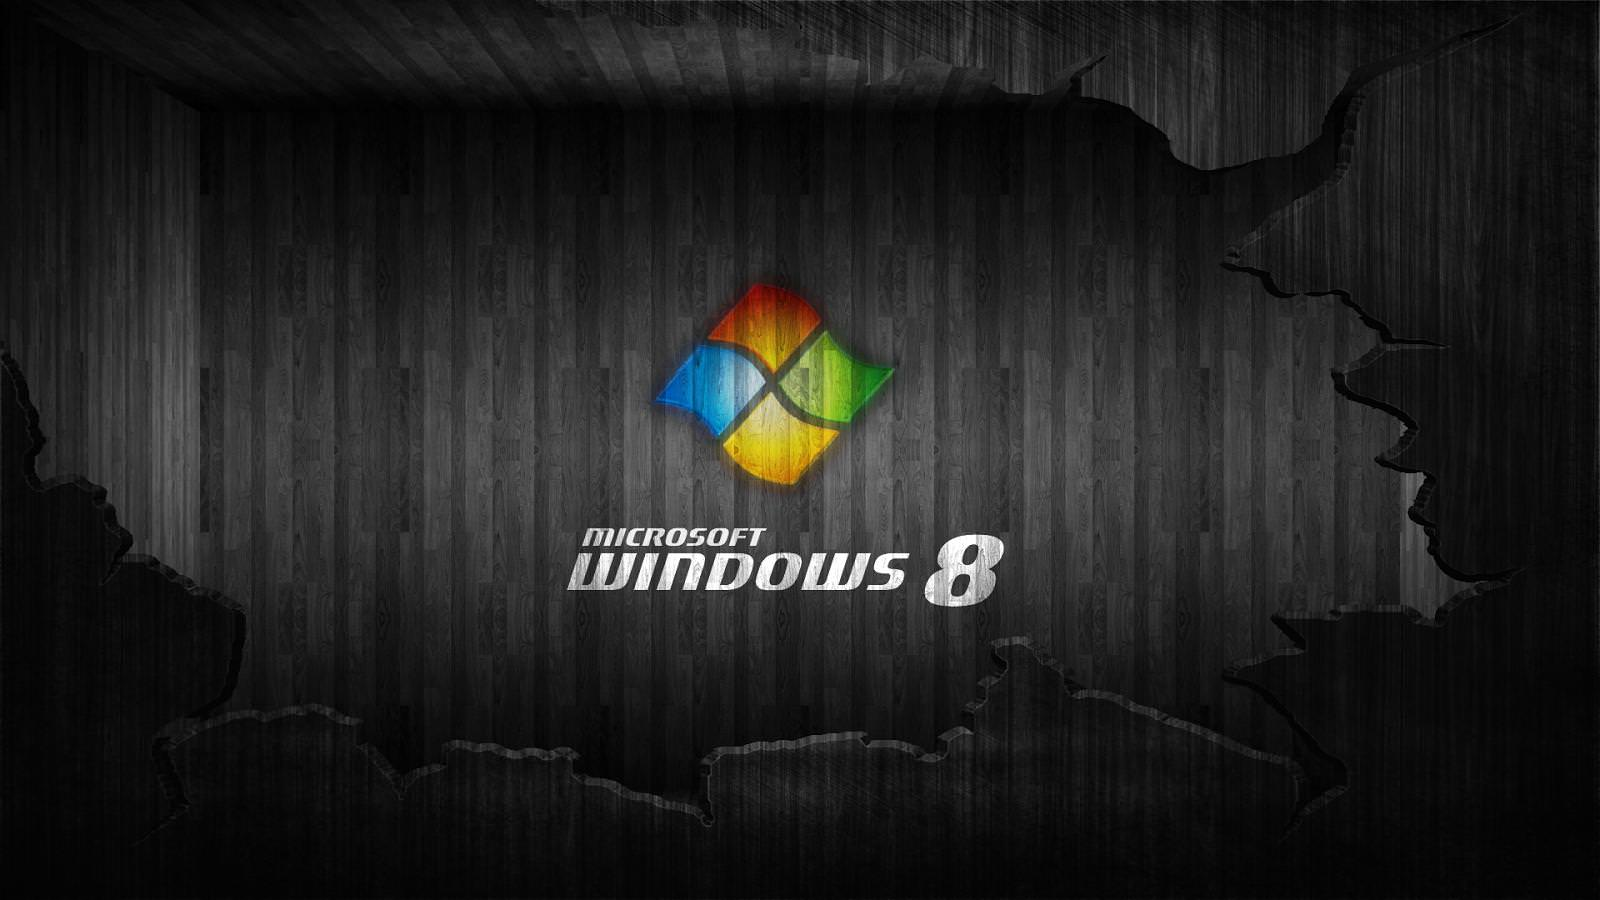 30 3d windows 8 wallpapers images backgrounds design for Window 3d wallpaper